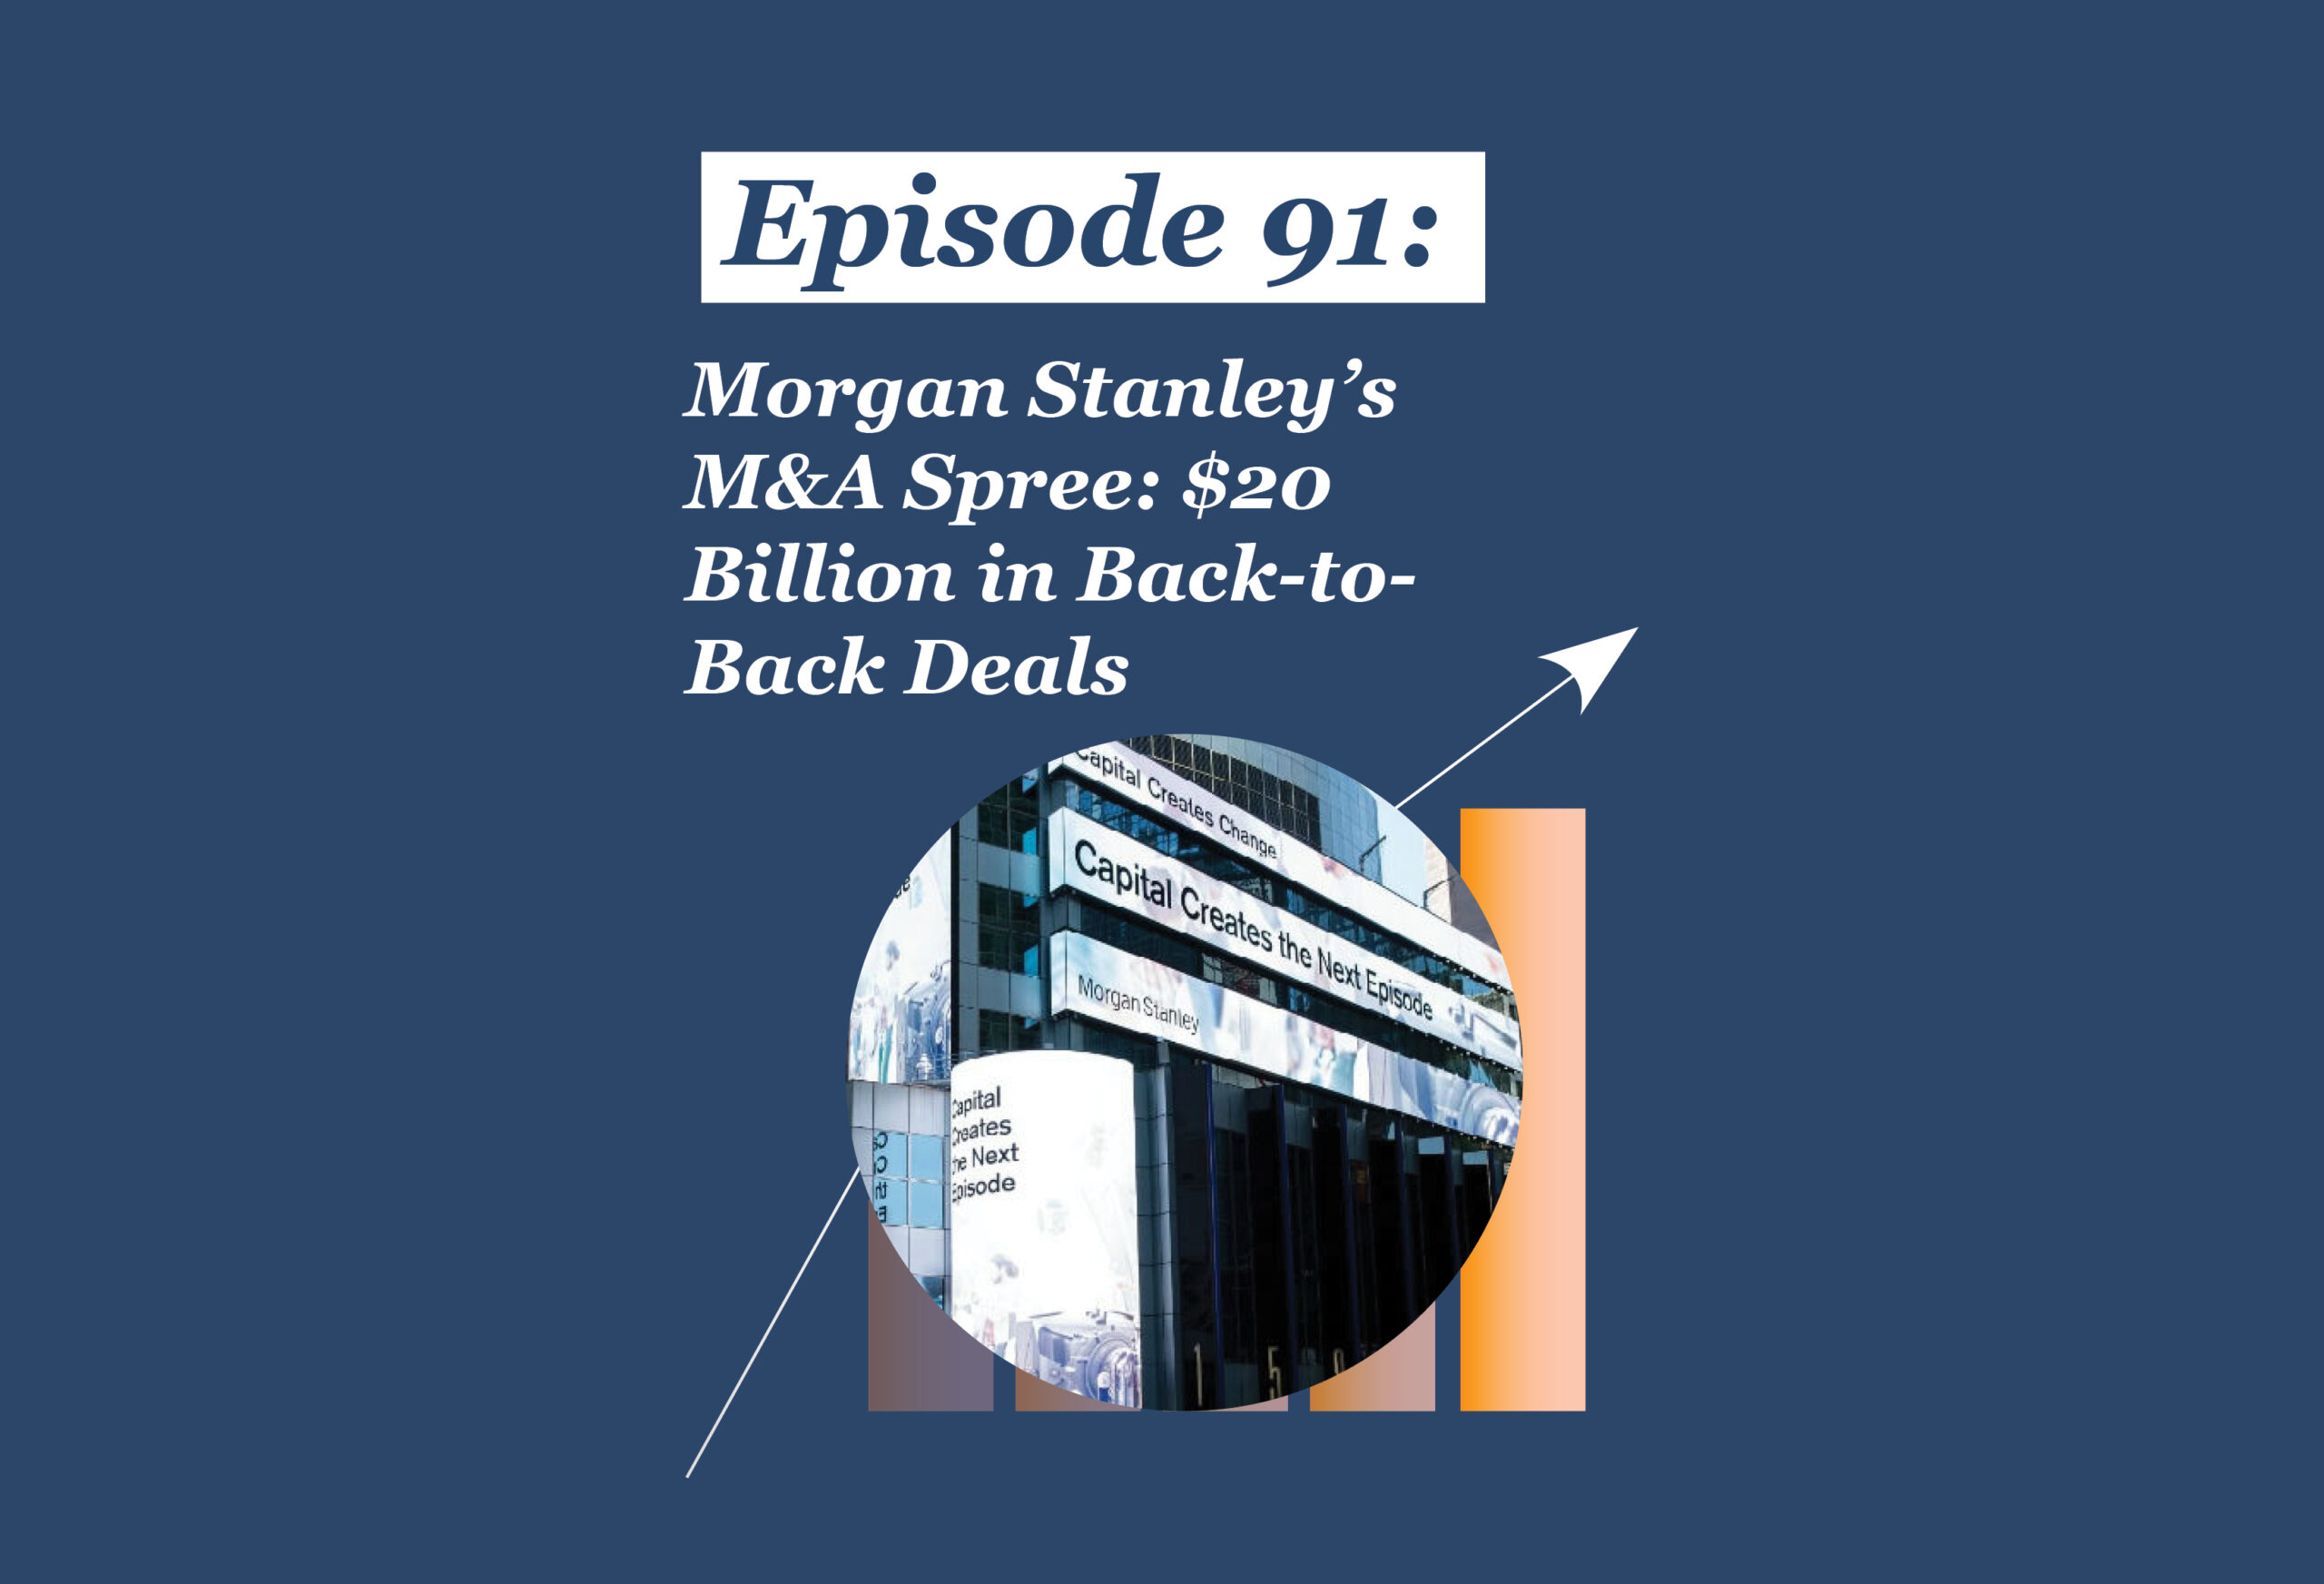 Absolute Return Podcast #91: Morgan Stanley's M&A Spree: $20 Billion in Back-to-Back Deals